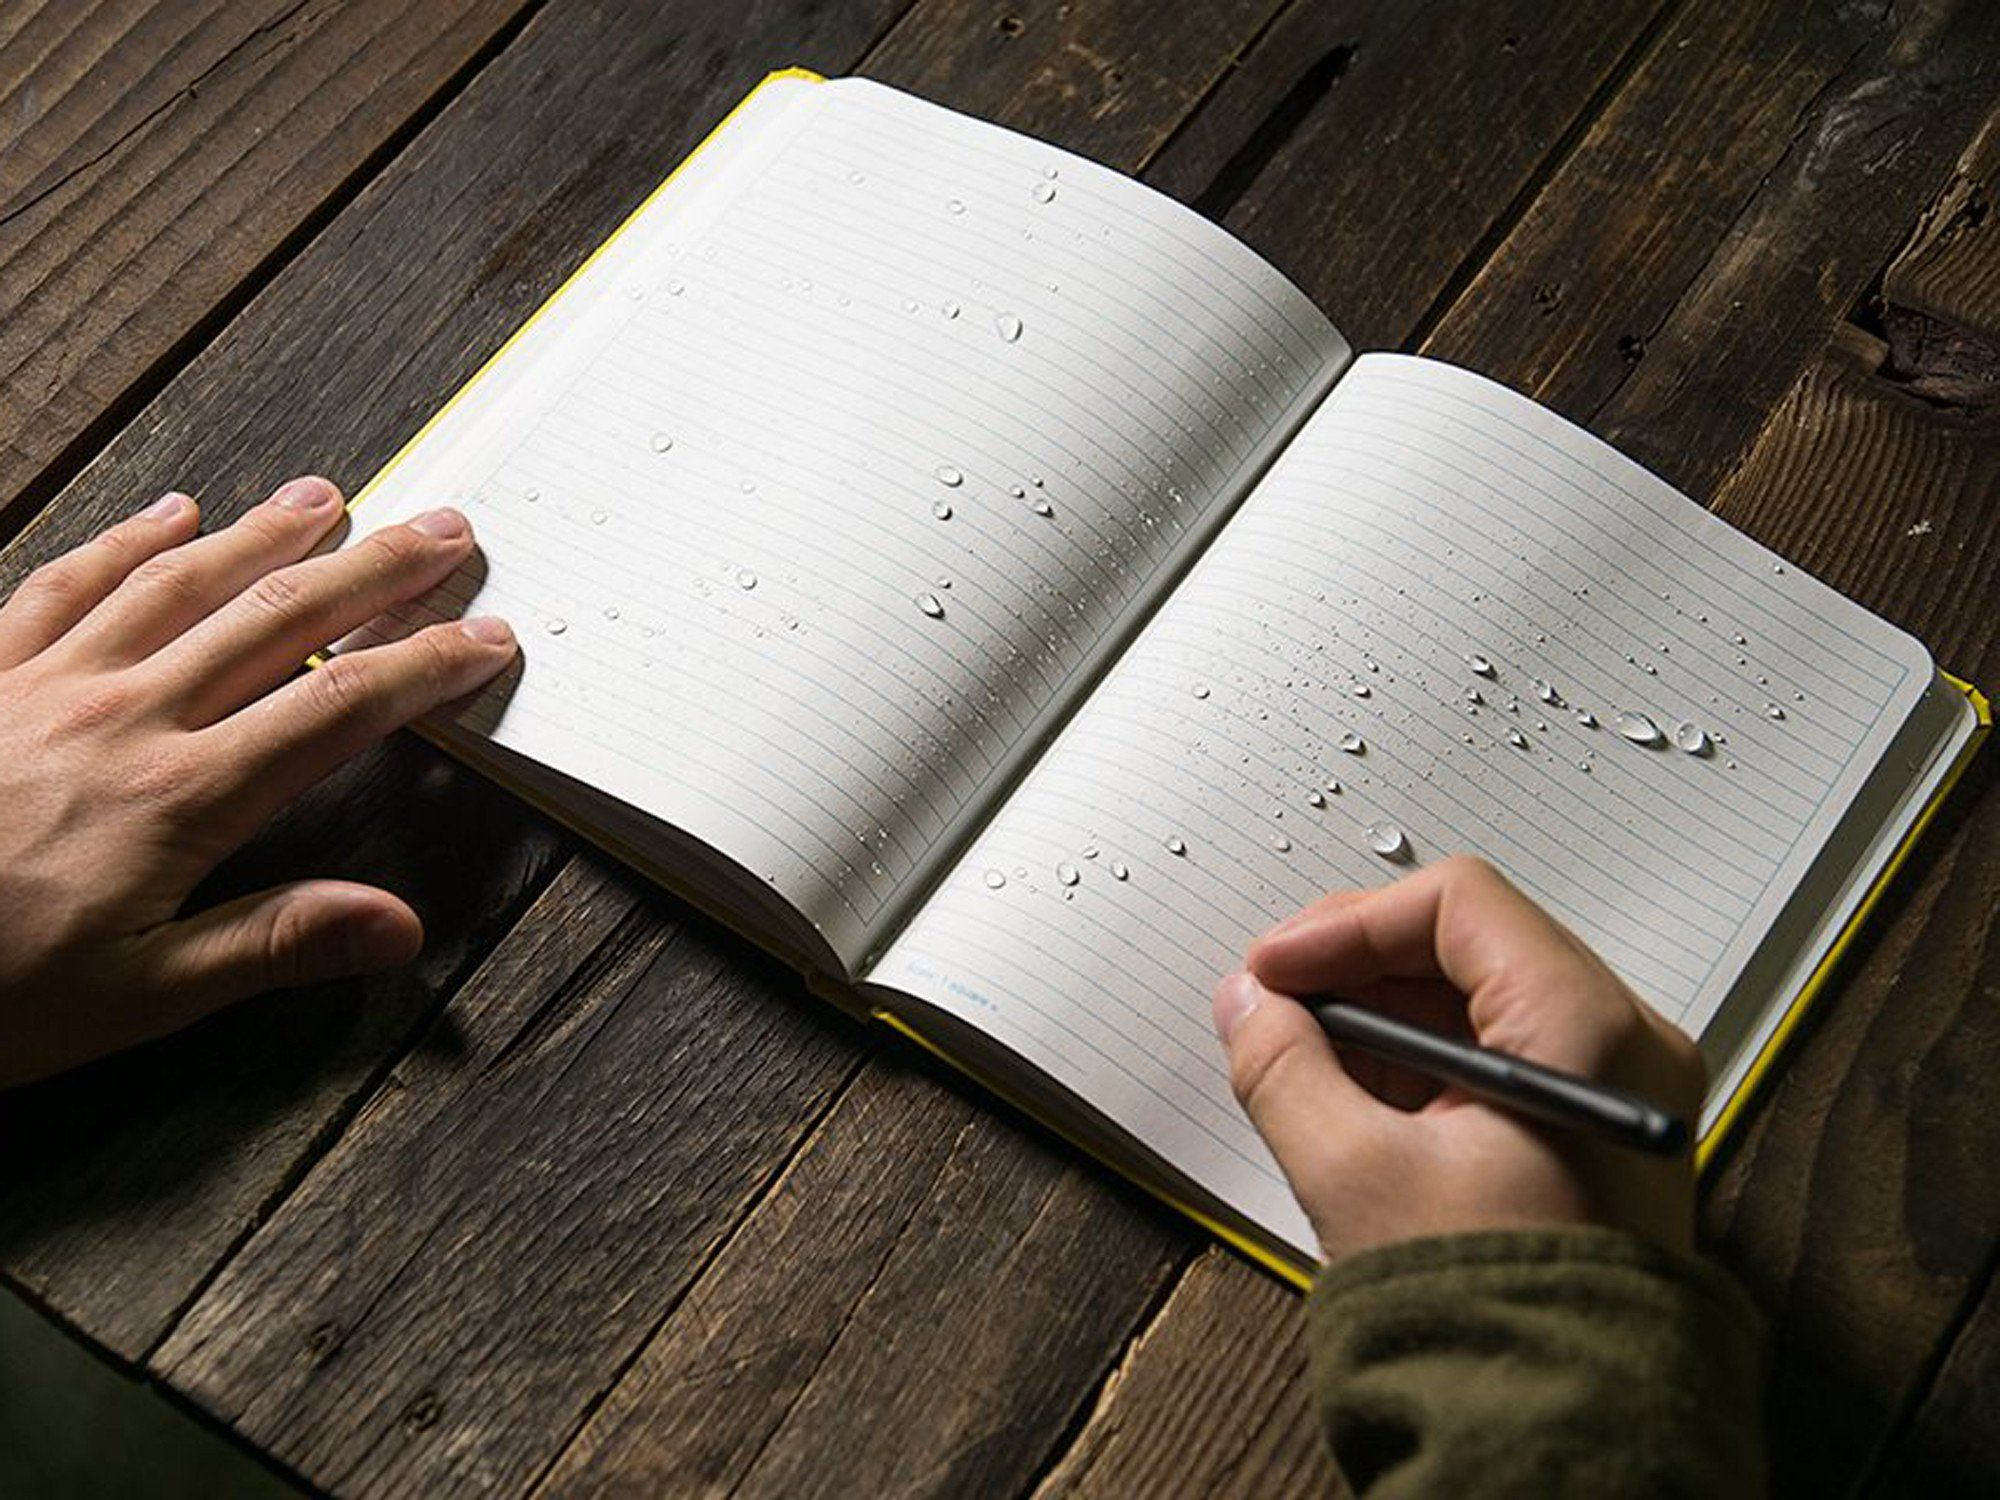 All Weather Water Proof Paper That Sheds Water And Enables Writing